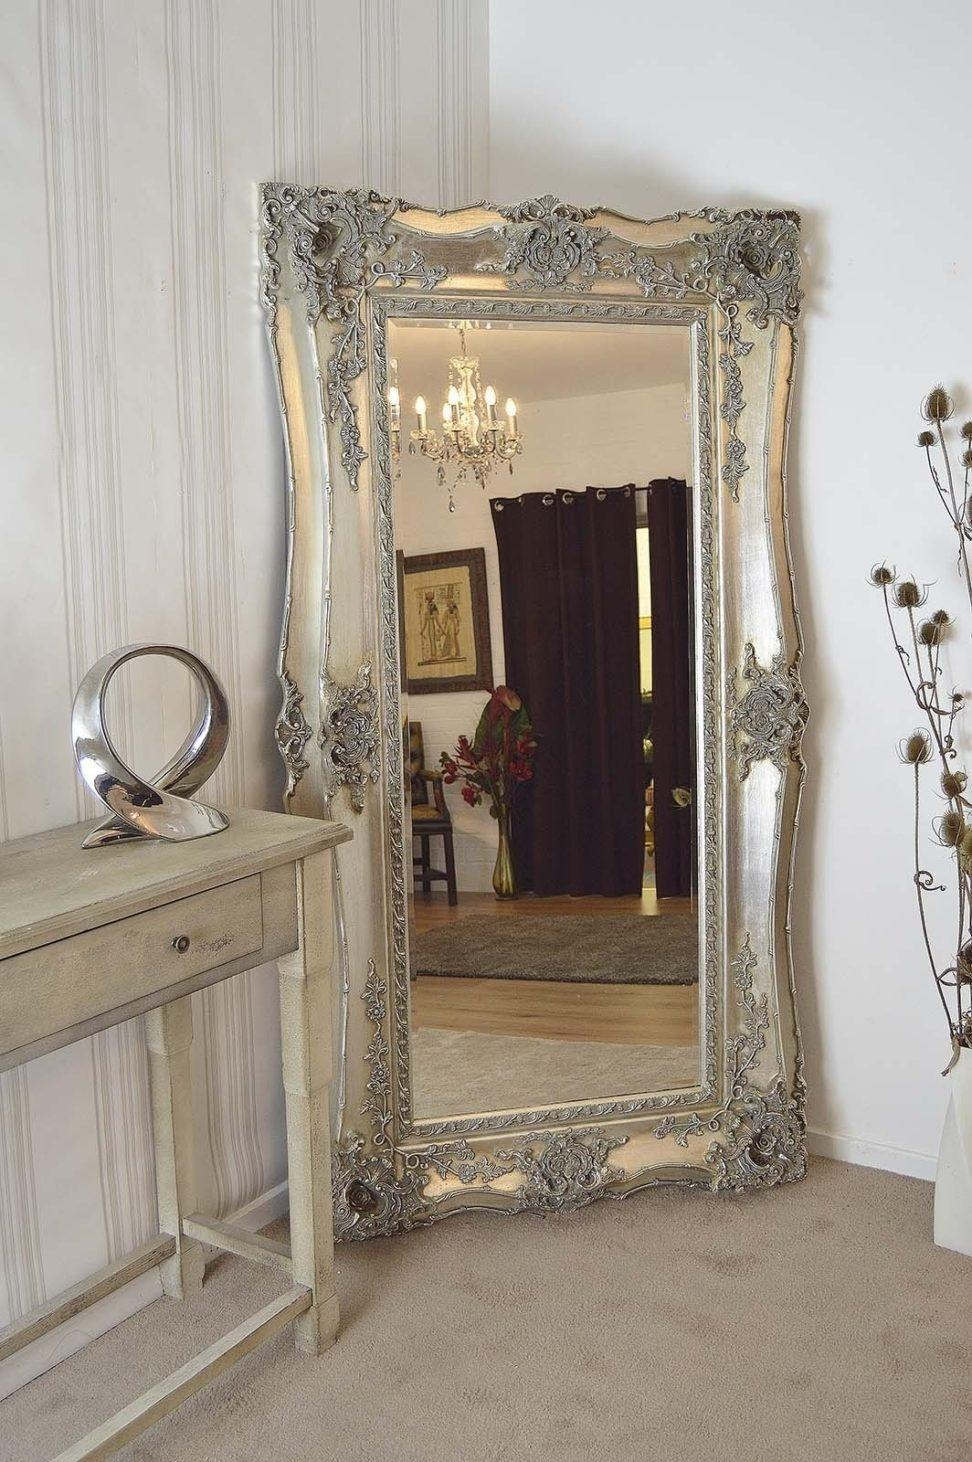 Extra Large Floor Standing Mirror Uk | Floor Decoration Regarding Extra Large Floor Standing Mirrors (Image 10 of 20)